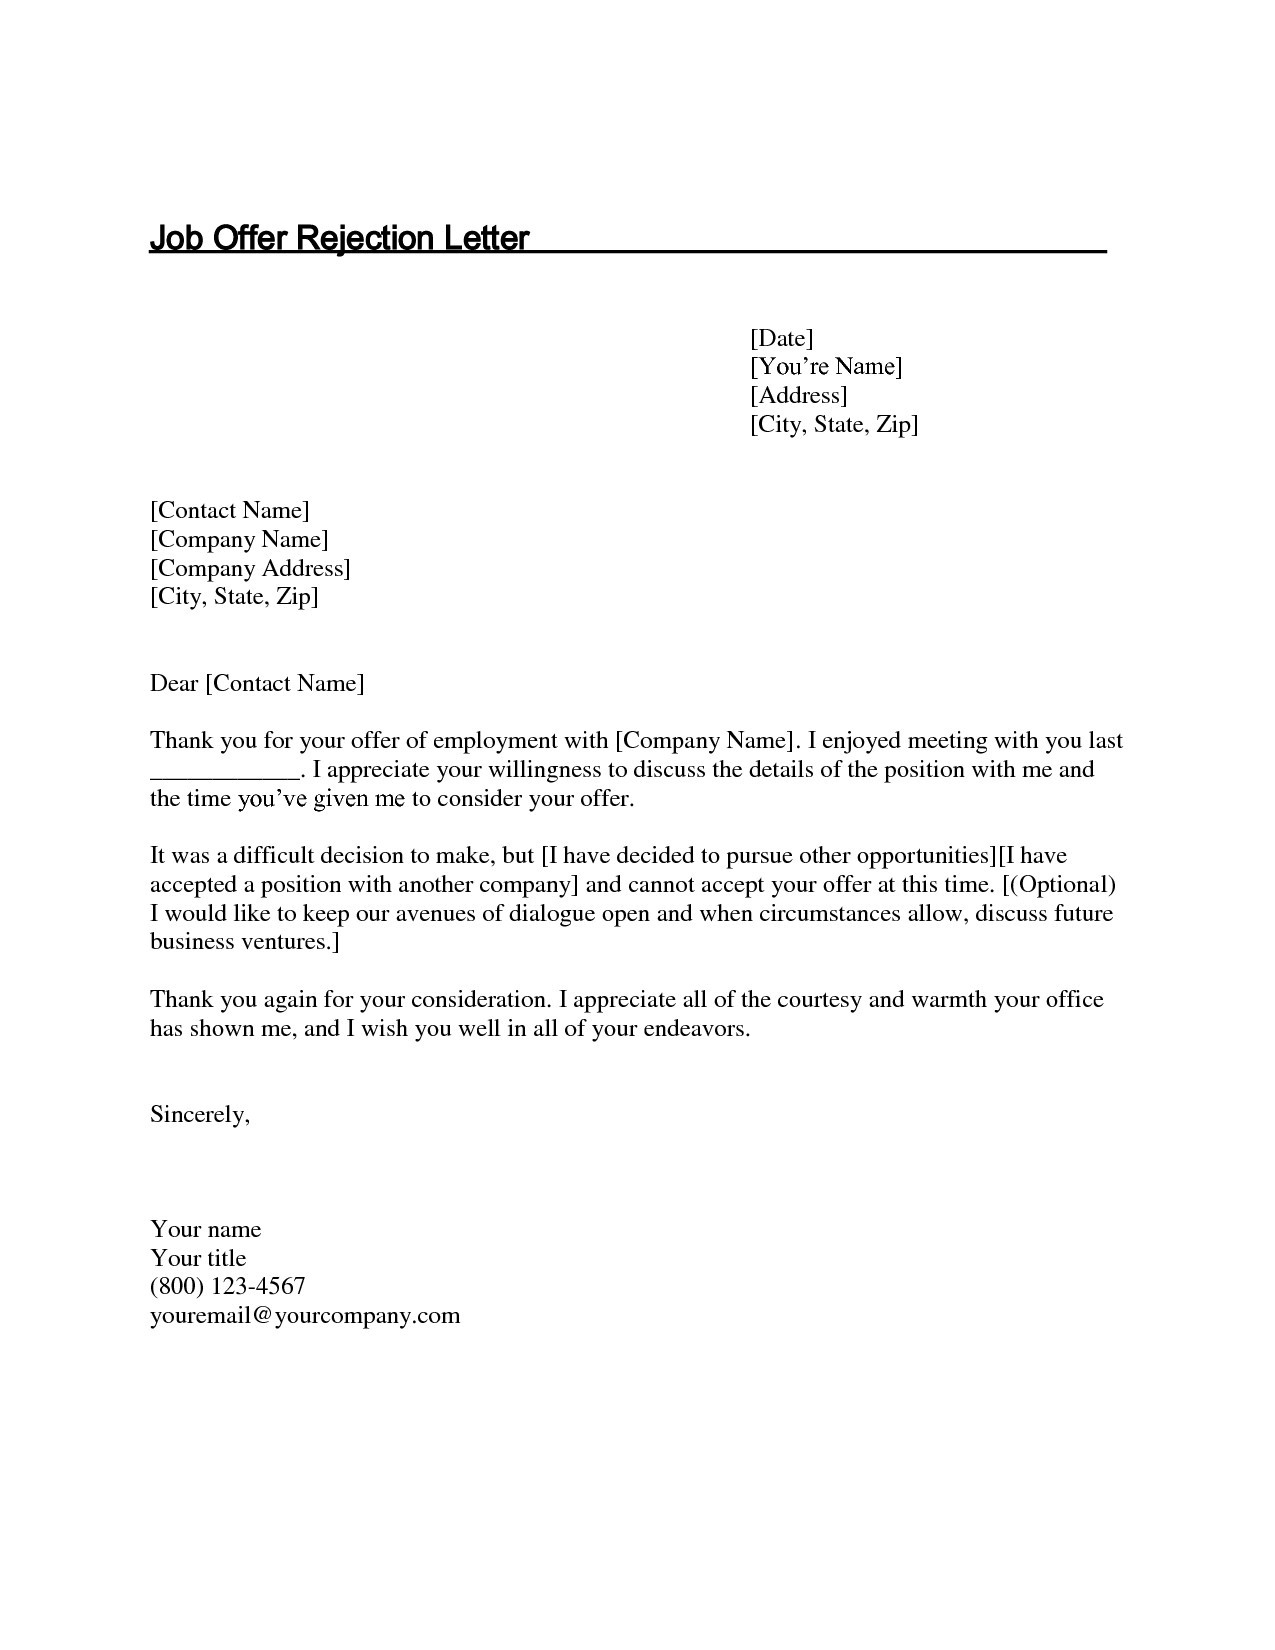 Job offer decline letter template examples letter templates job offer decline letter template thank you letter after job fer decline luxury new rejection expocarfo Choice Image